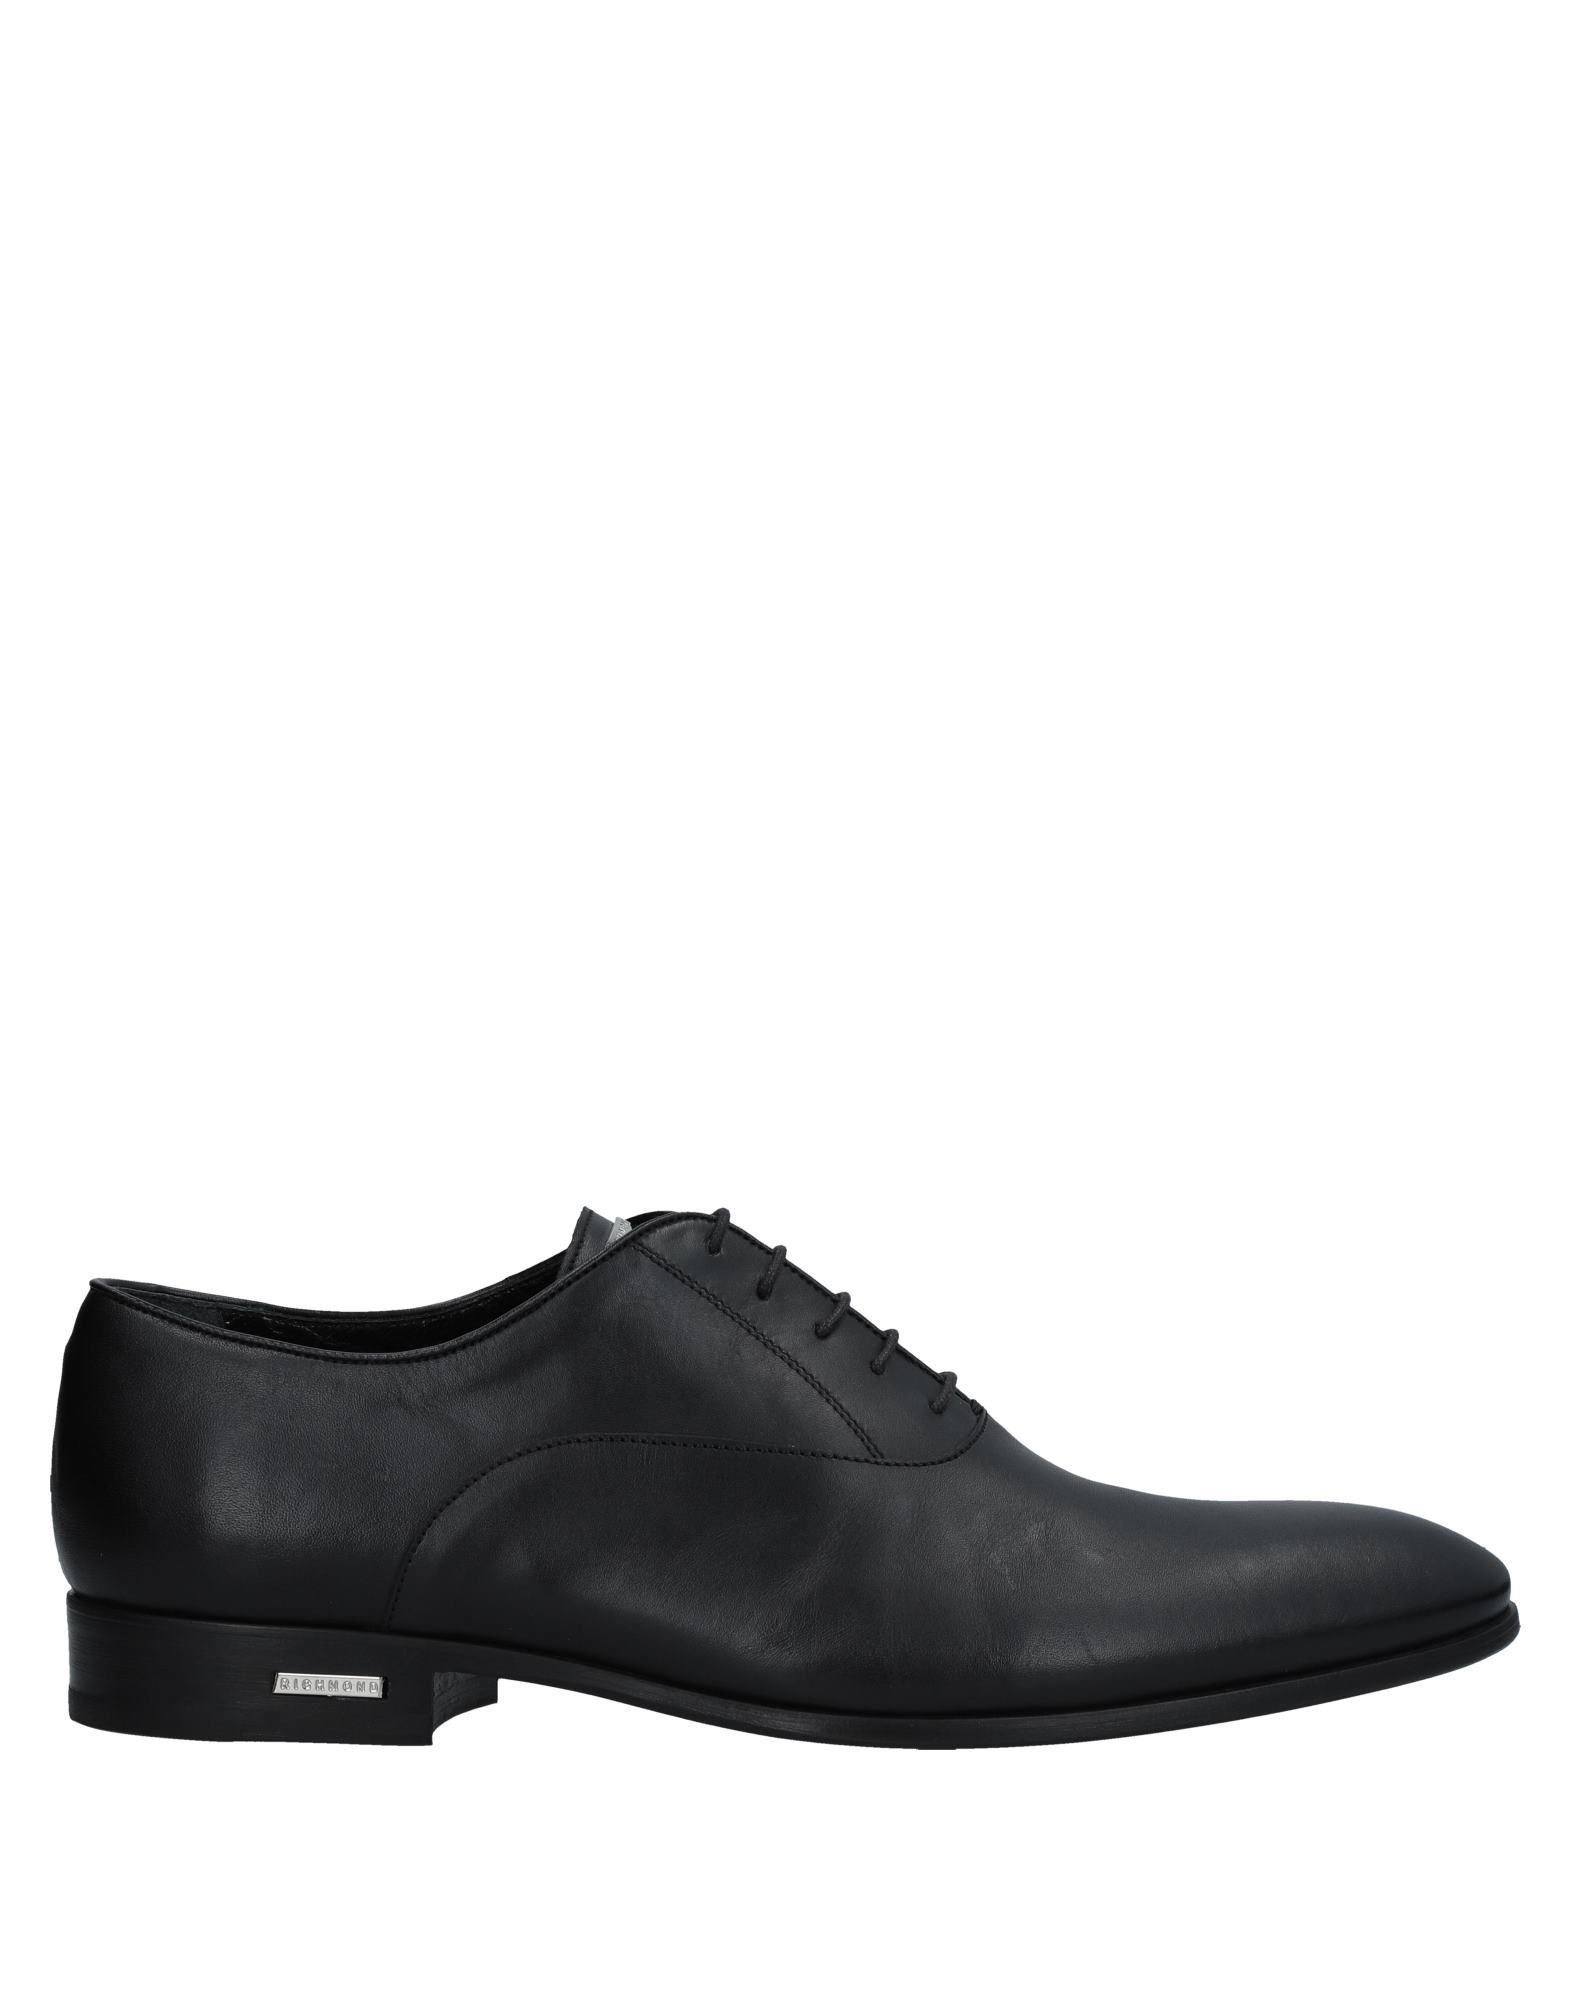 Moda Stringate Richmond Uomo - 11523243WC